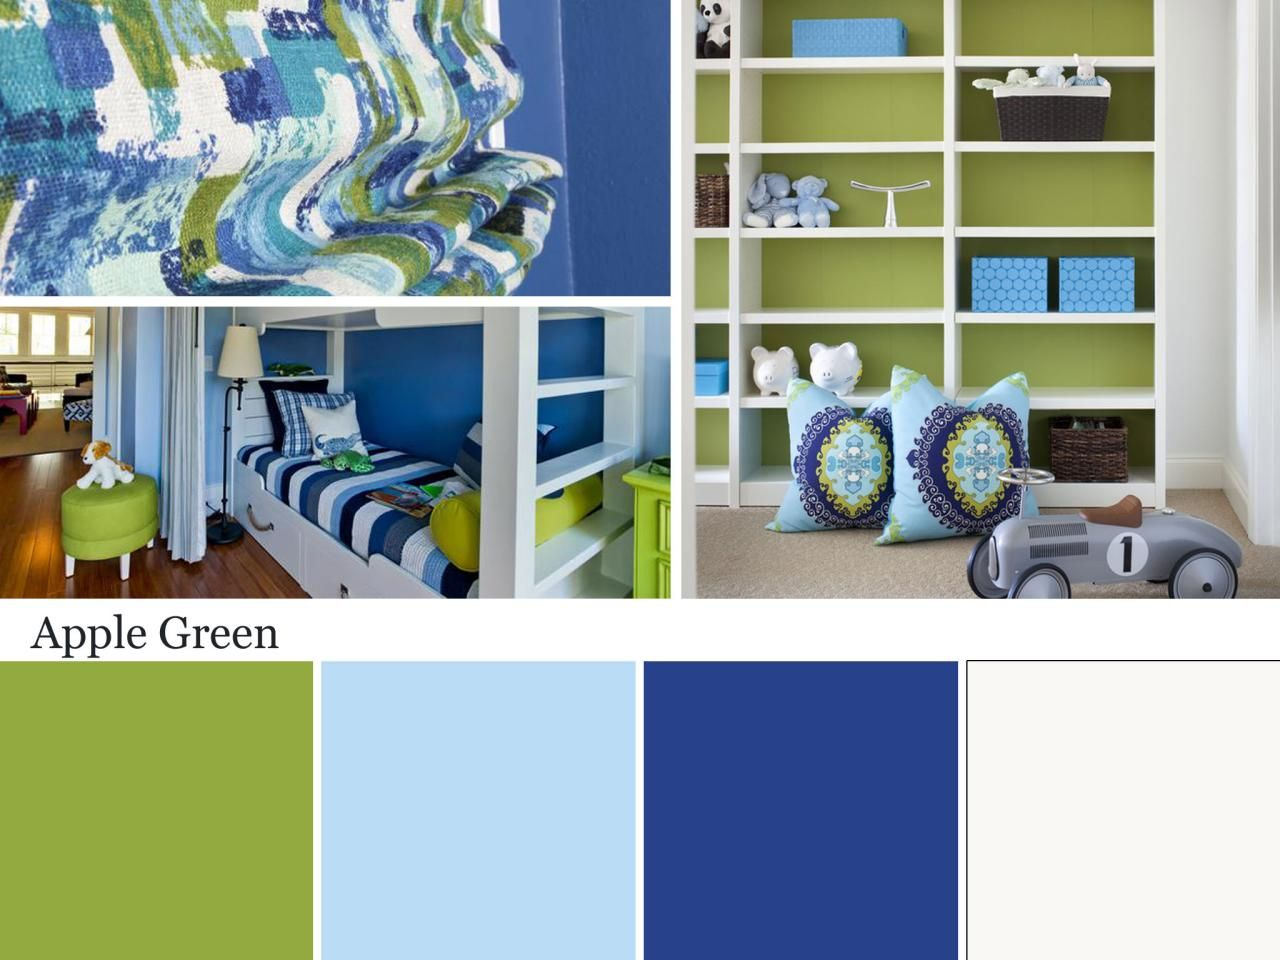 color competition vote for your favorite color bedroom color palettesgreen - Home Decor Color Palettes